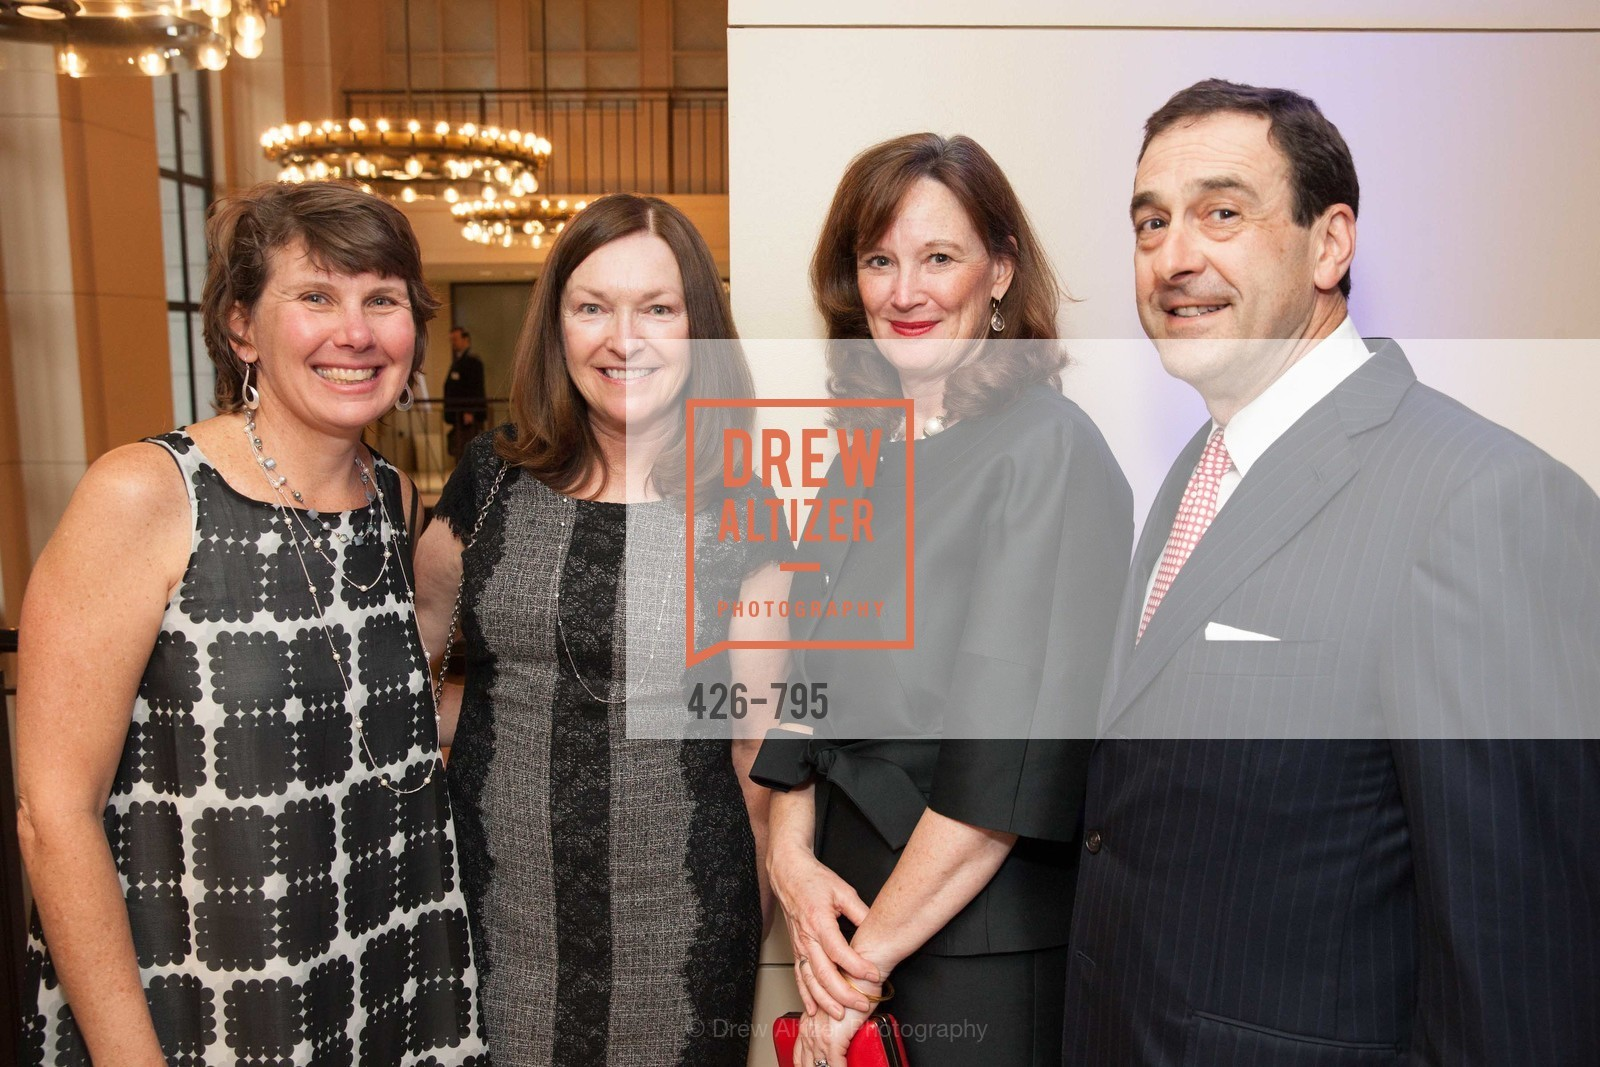 Erica Kisch, Anne Parish, Andrea Nagelson, Scott Nagelson, COMPASS FAMILY SERVICES Annual Spring Benefit:  Every Family Needs A Home, US, April 23rd, 2015,Drew Altizer, Drew Altizer Photography, full-service agency, private events, San Francisco photographer, photographer california